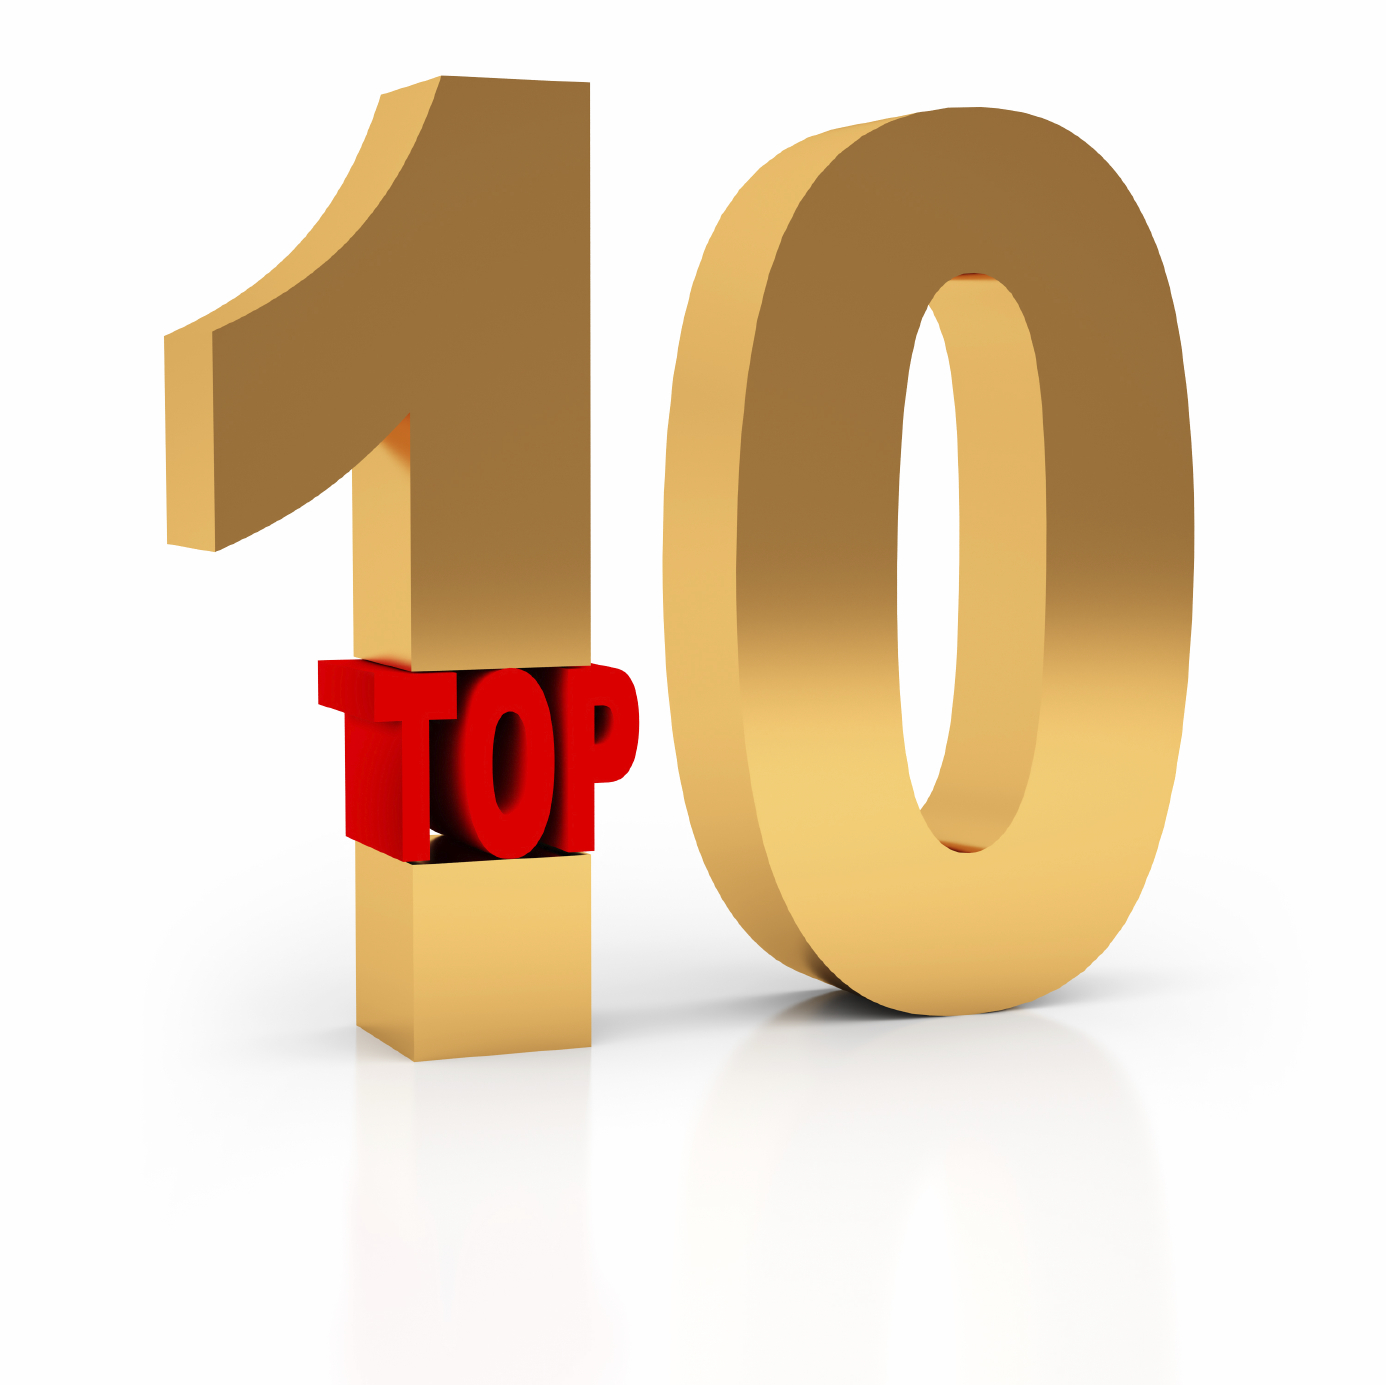 Top 10 Winner 3d Symbol Isolated